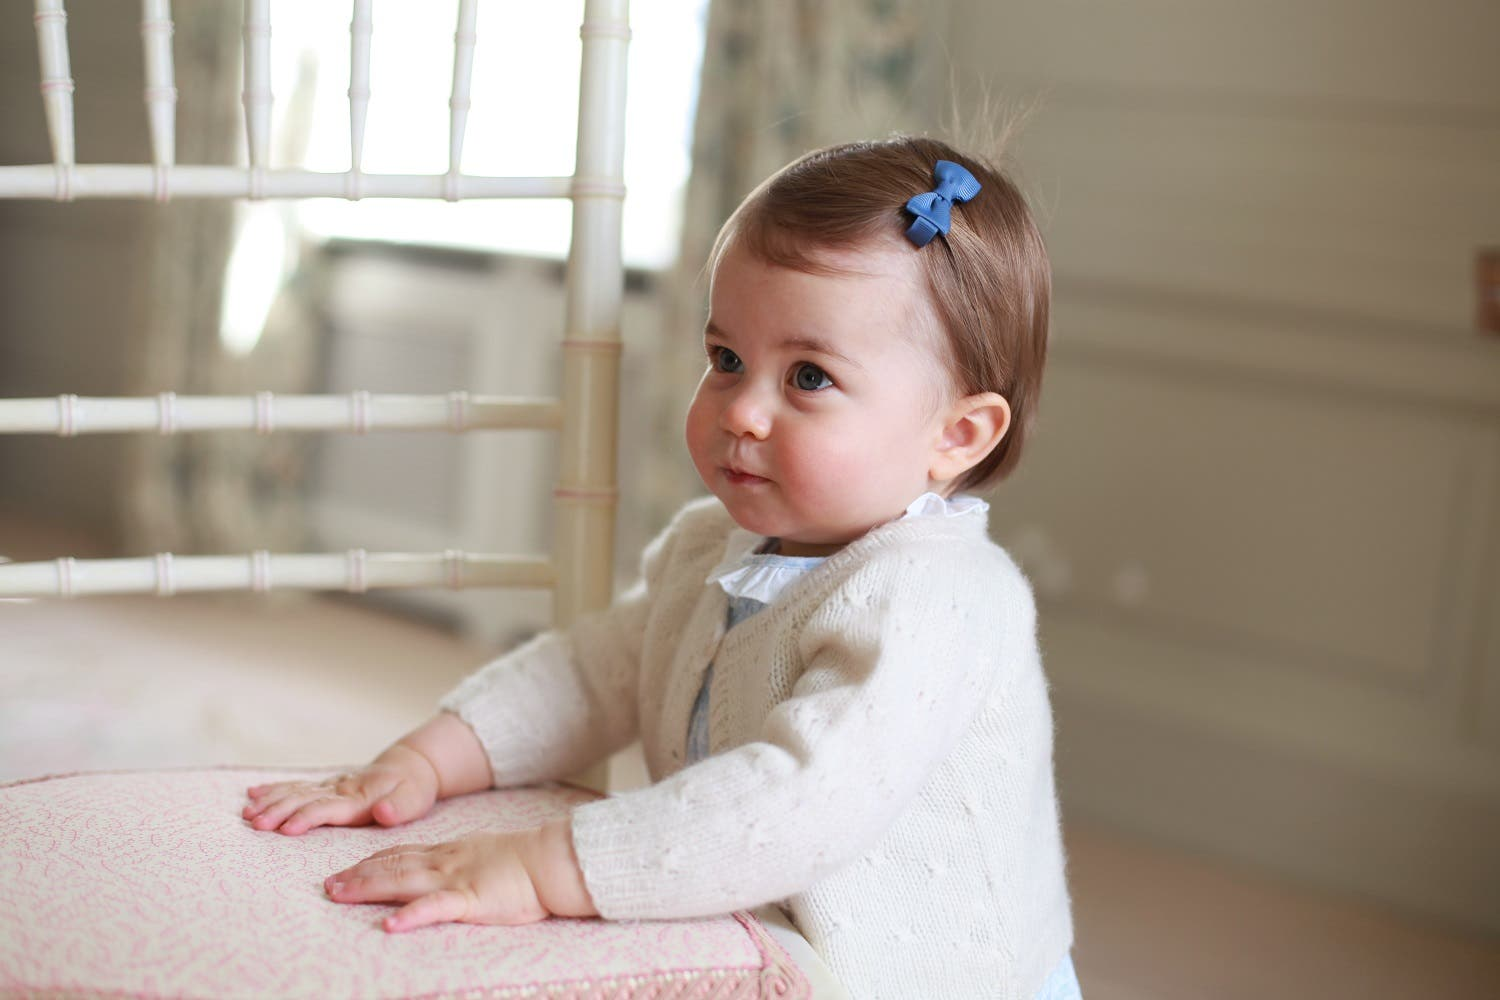 In this undated handout photo released on Sunday, May 1, 2016 by Kensington Palace, Britain's Princess Charlotte poses for a photograph, at Anmer Hall, in Norfolk, England (Photo: Kate, the Duchess of Cambridge/Kensington Palace via AP)